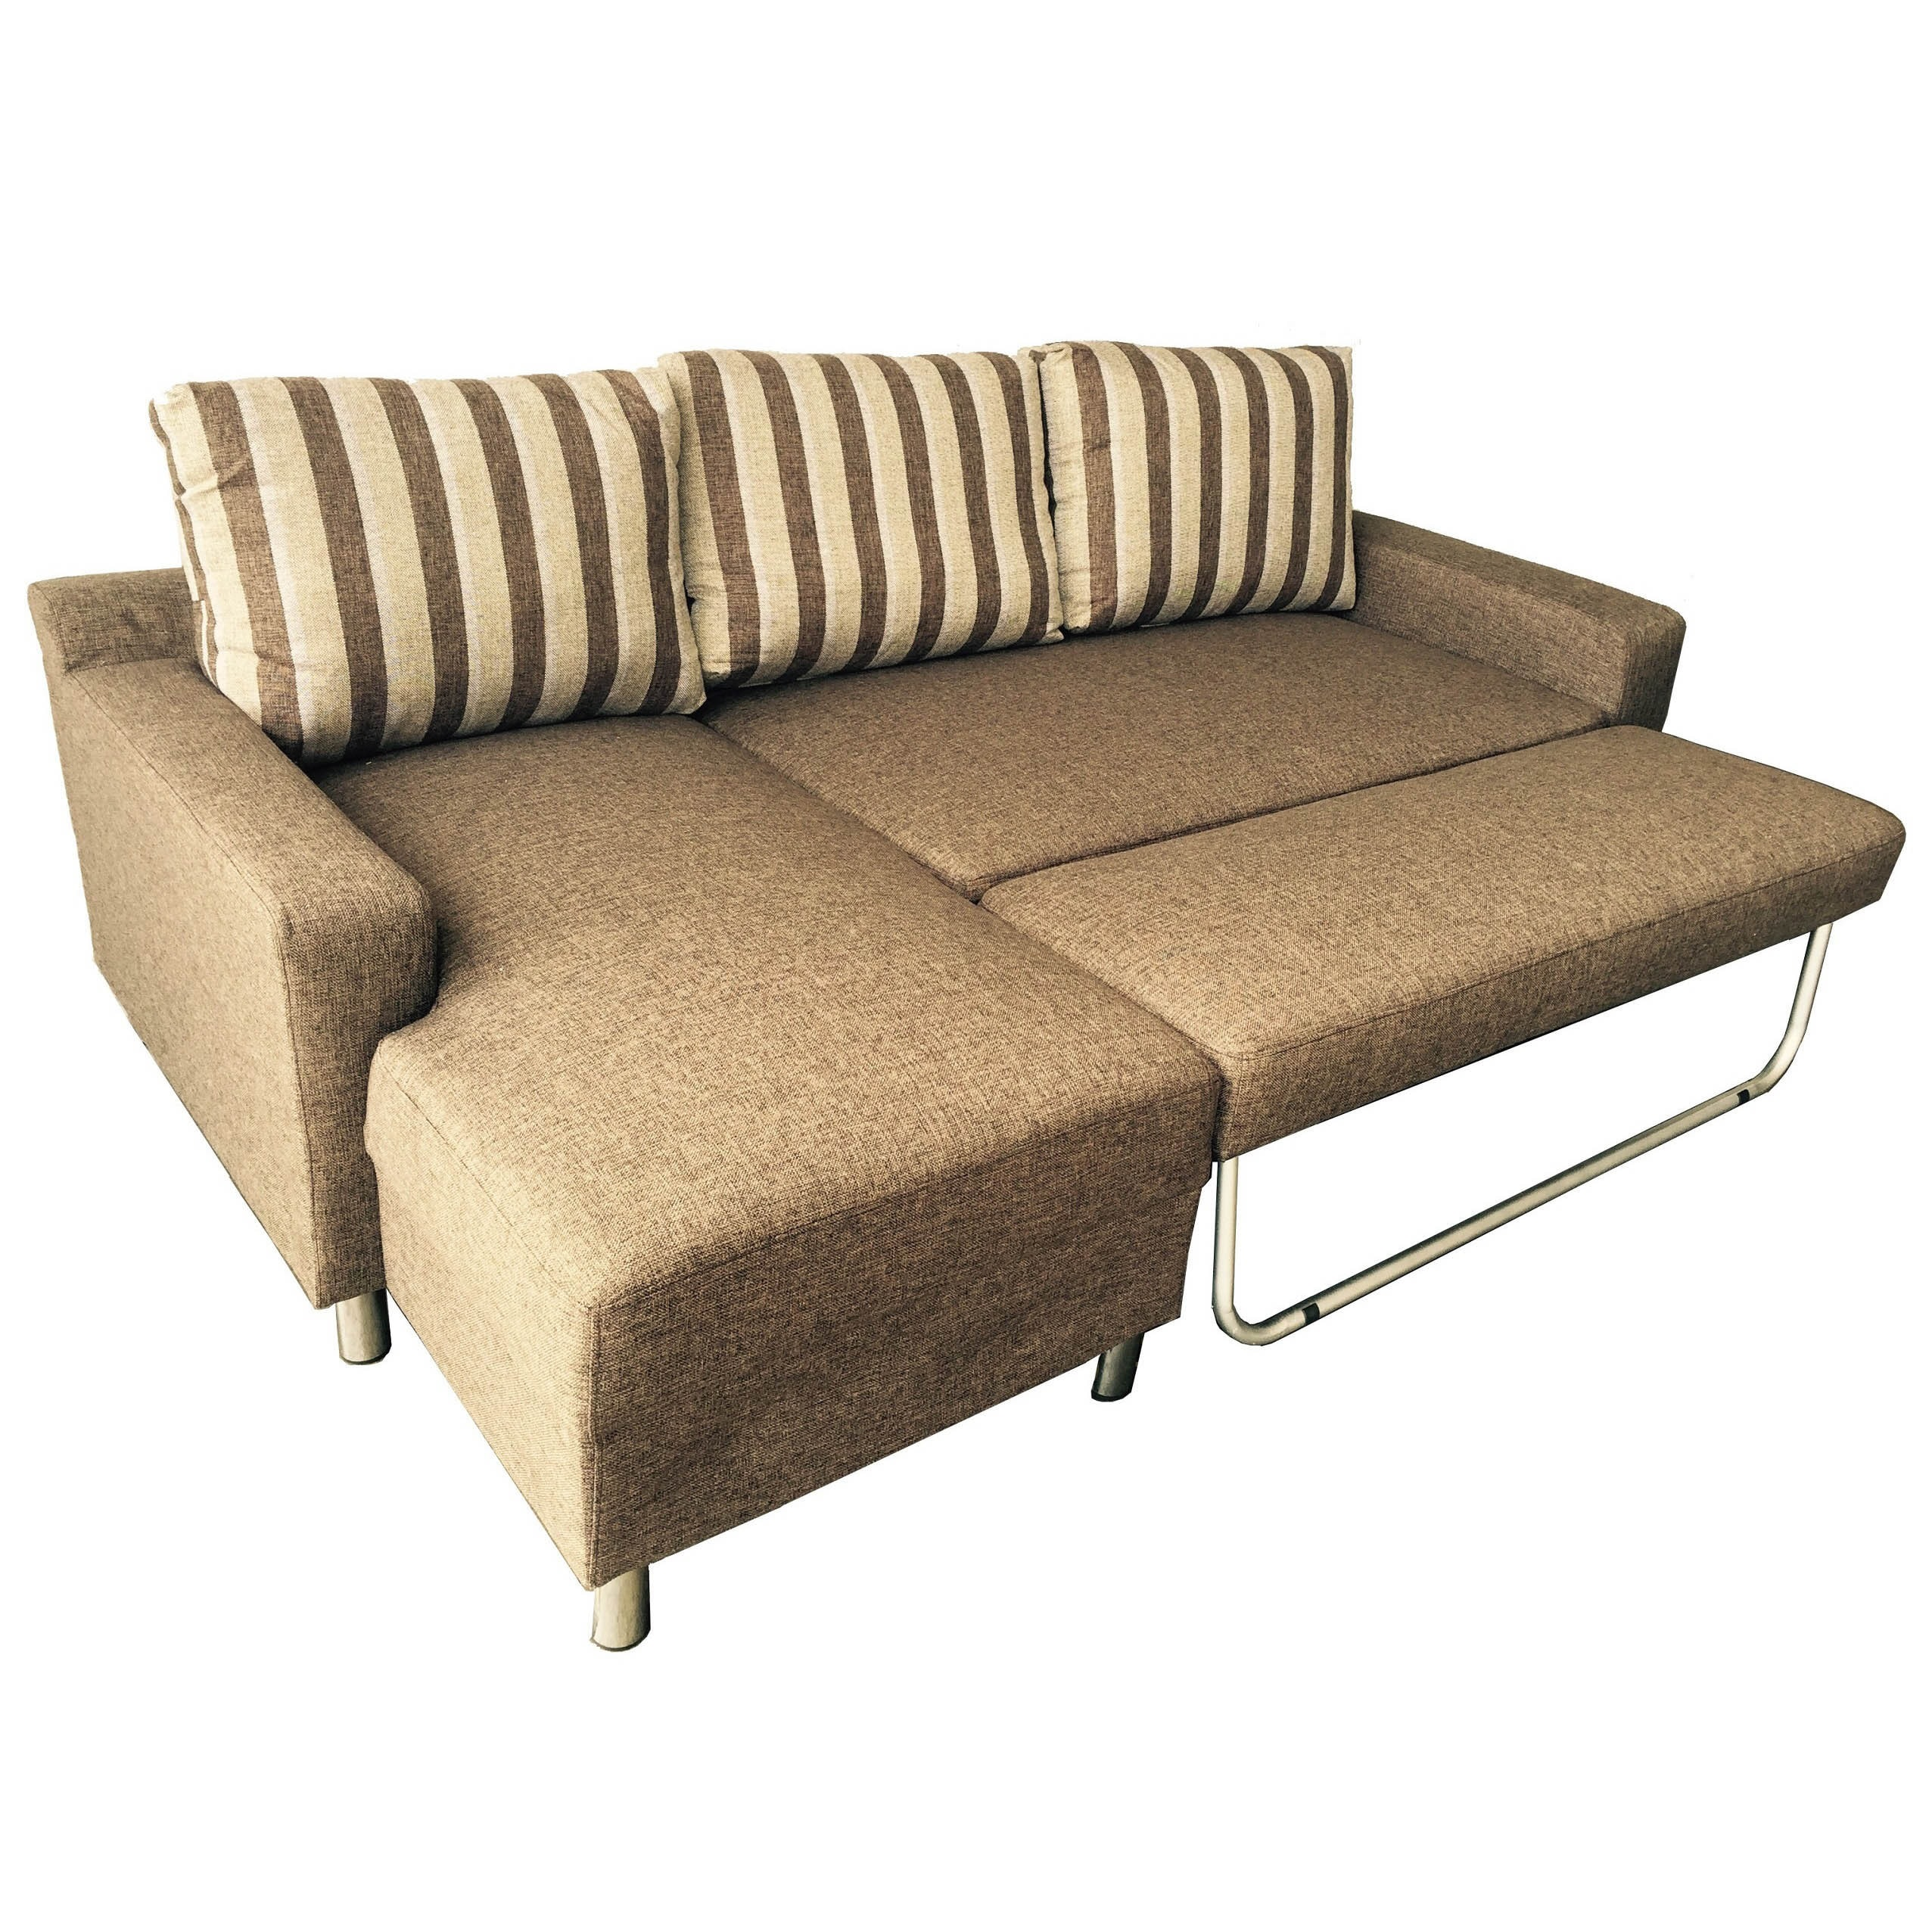 Superb Kachy Fabric Convertible Sectional Sofa Bed   Free Shipping Today    Overstock   17511979